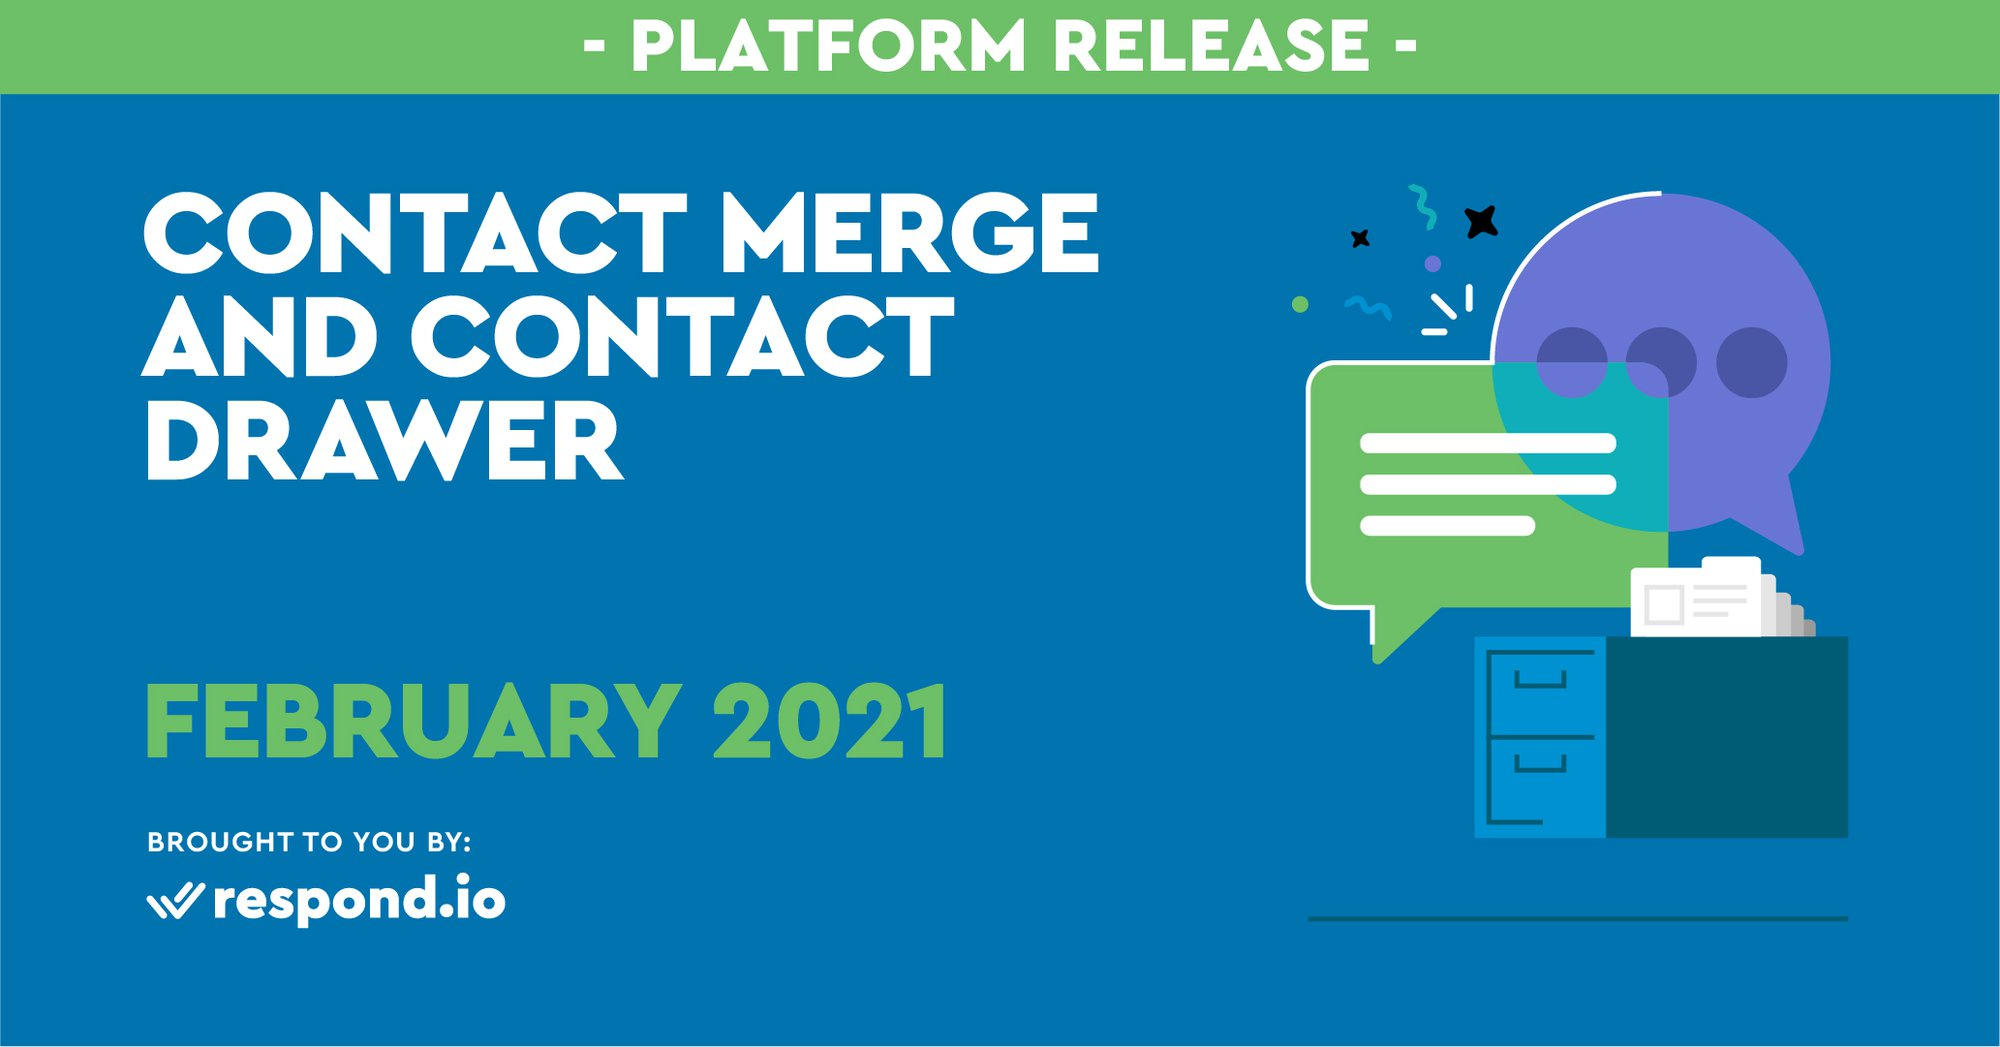 The February 2021 Release - Contact Merge and New Contact Drawer